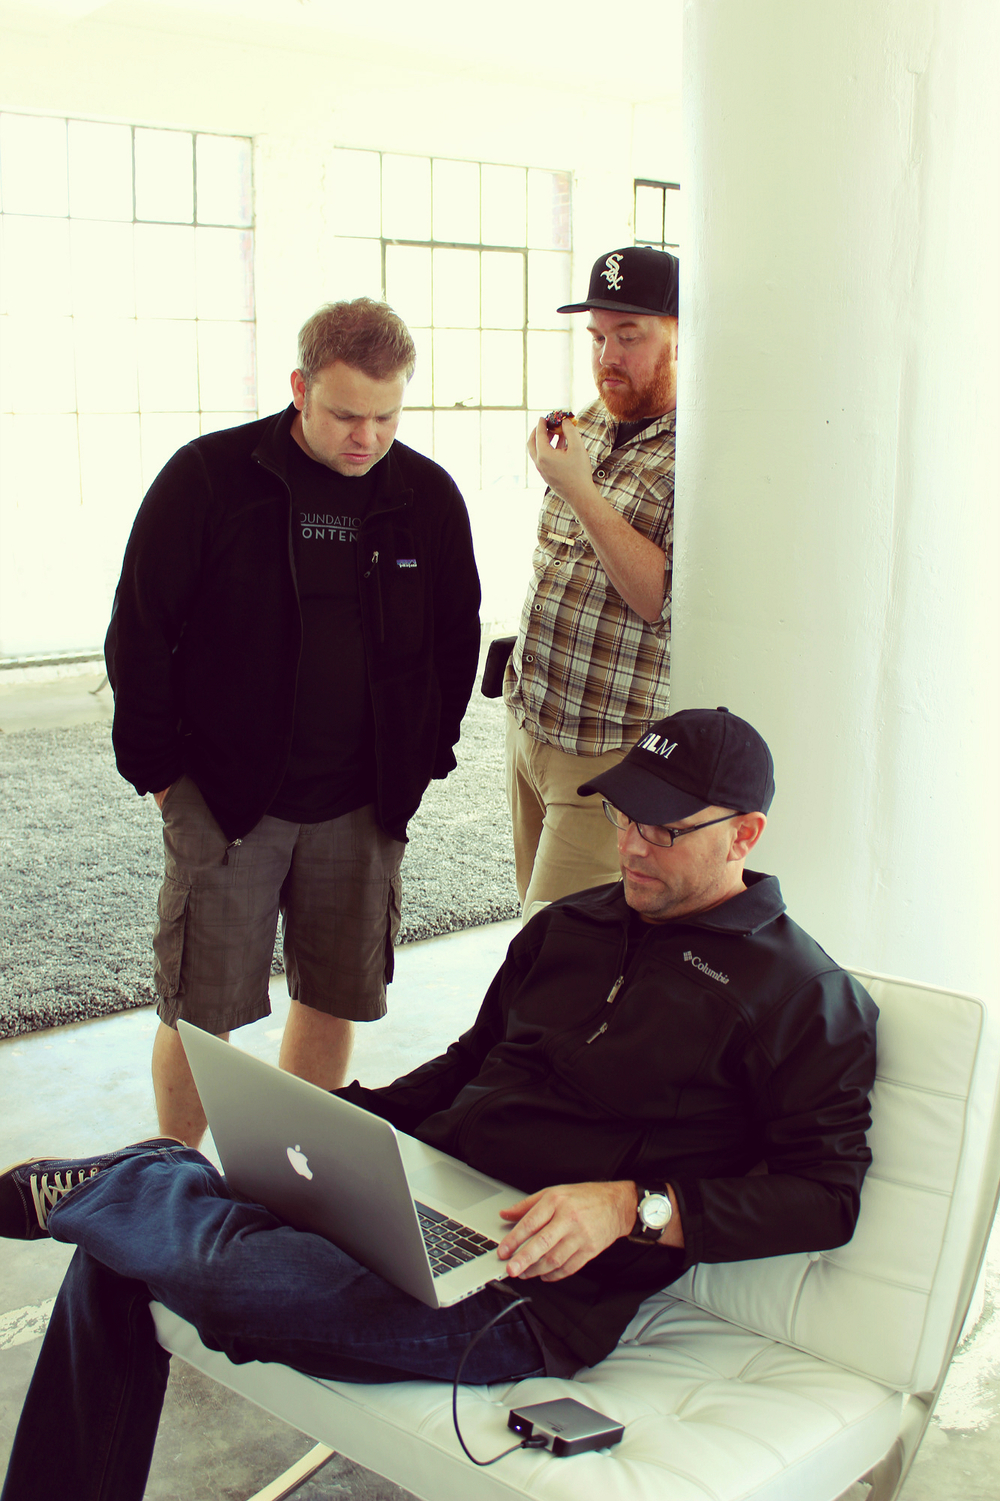 Gaffers Erik Anschicks, Andrew Roddewig and Director Kevin Otterness on set. Photographs by: Kim St. Aubin